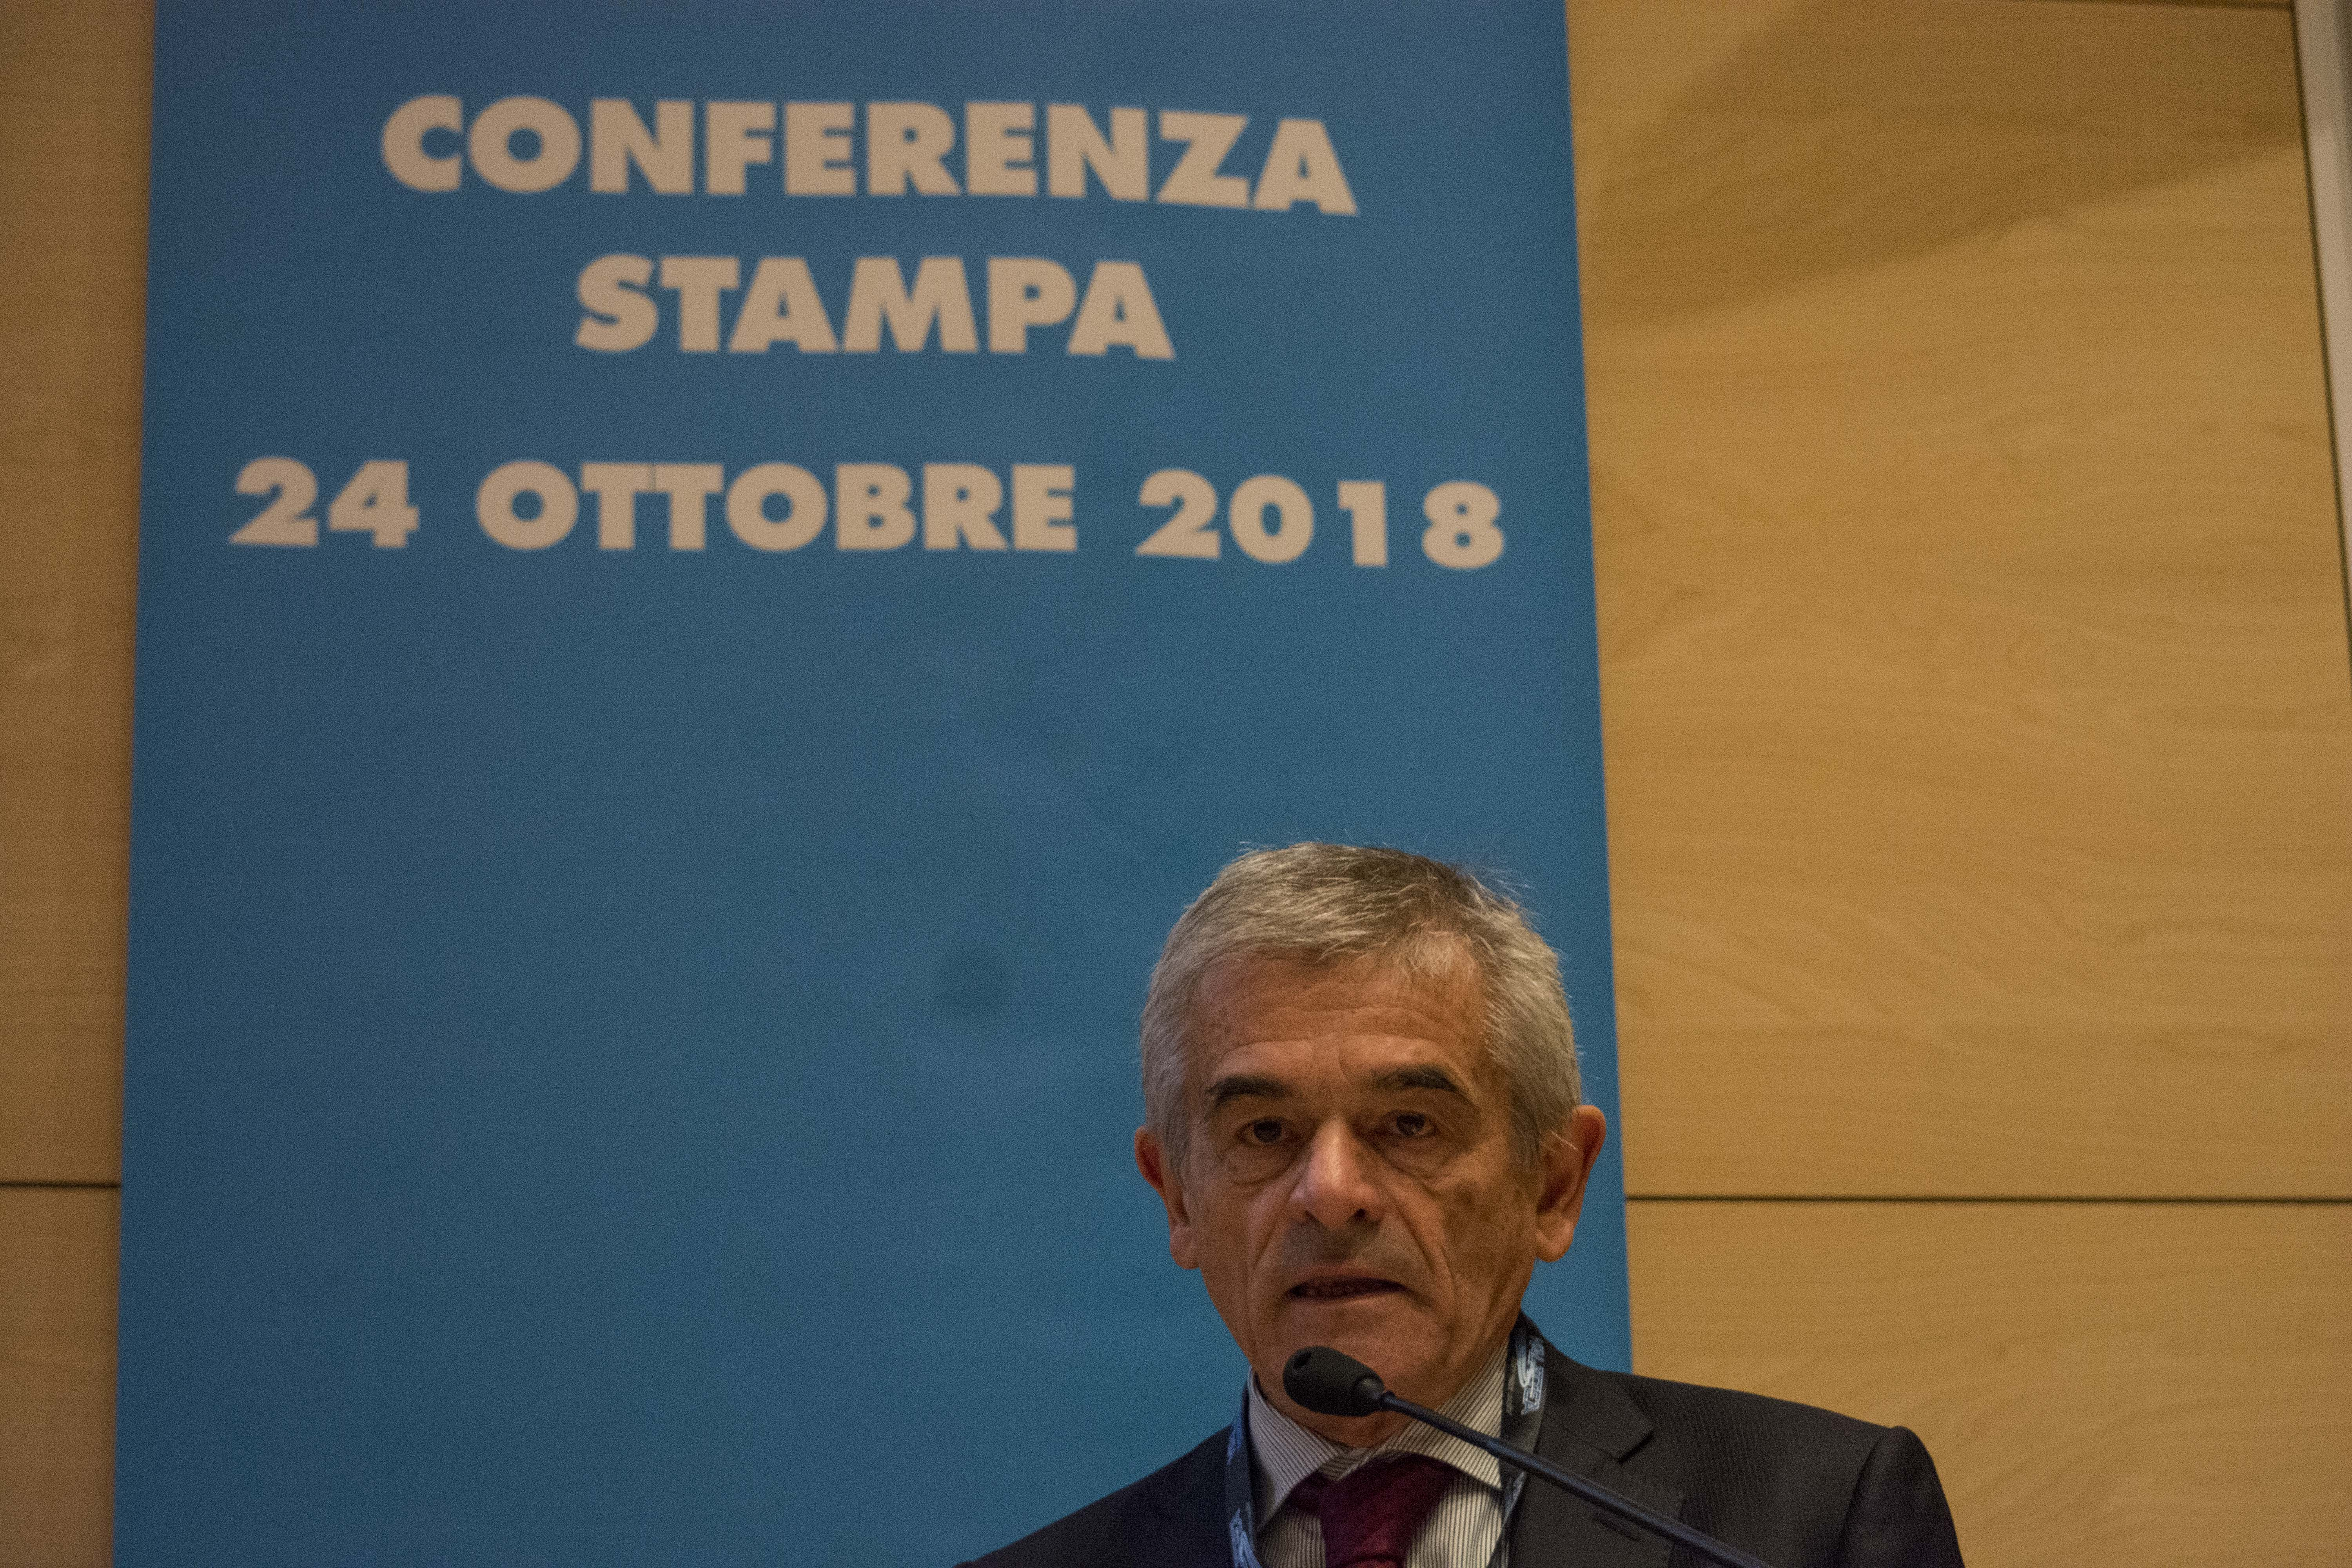 Conferenza Stampa 253